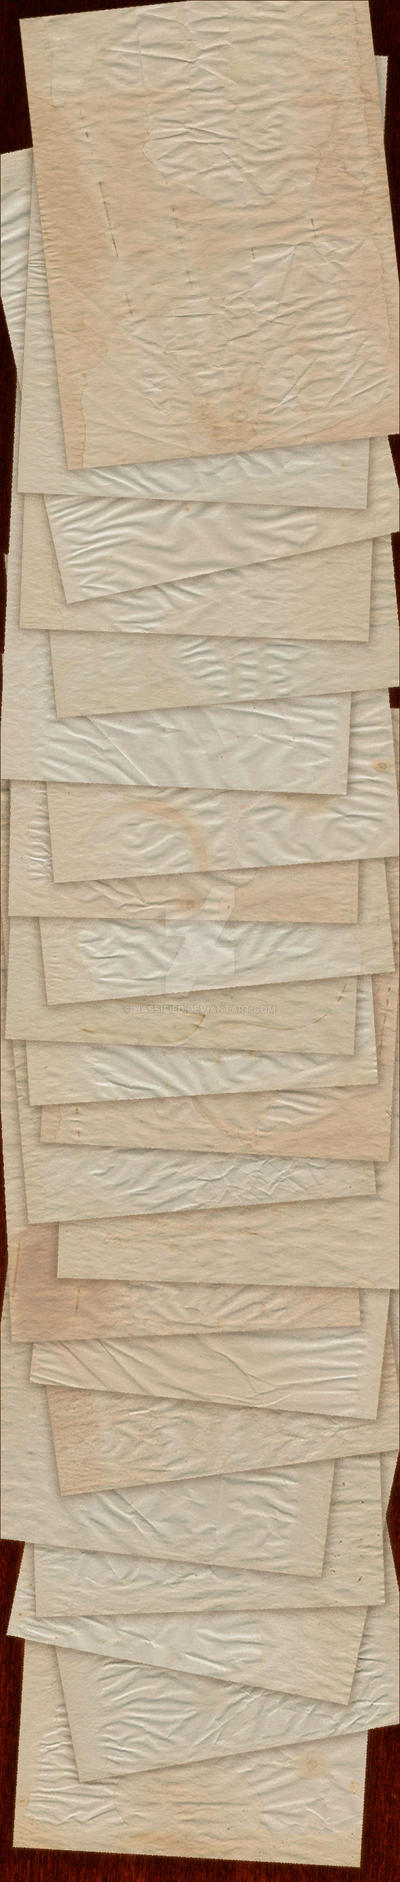 Aged Paper by hassified